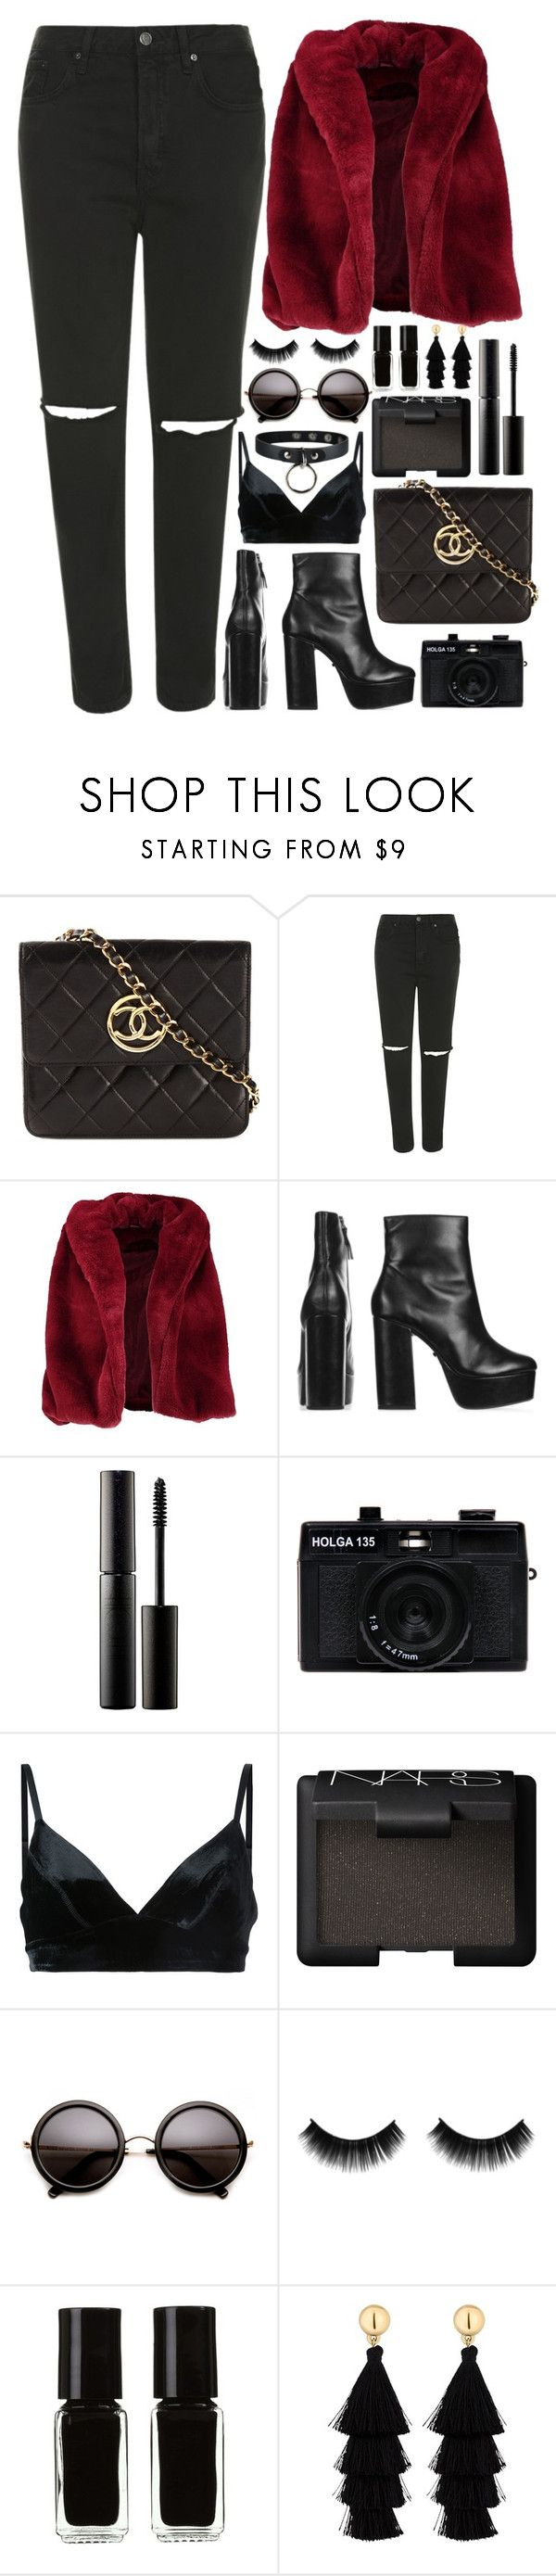 """Faux-fur coat & Black Boot & Quilted bag & Distressed boyfriend jeans & Tassel drop earrings."" by annaclaraalvez ❤ liked on Polyvore featuring Chanel, Topshop, Boohoo, Surratt, Holga, Manning Cartell, NARS Cosmetics, The New Black and Red Herring"